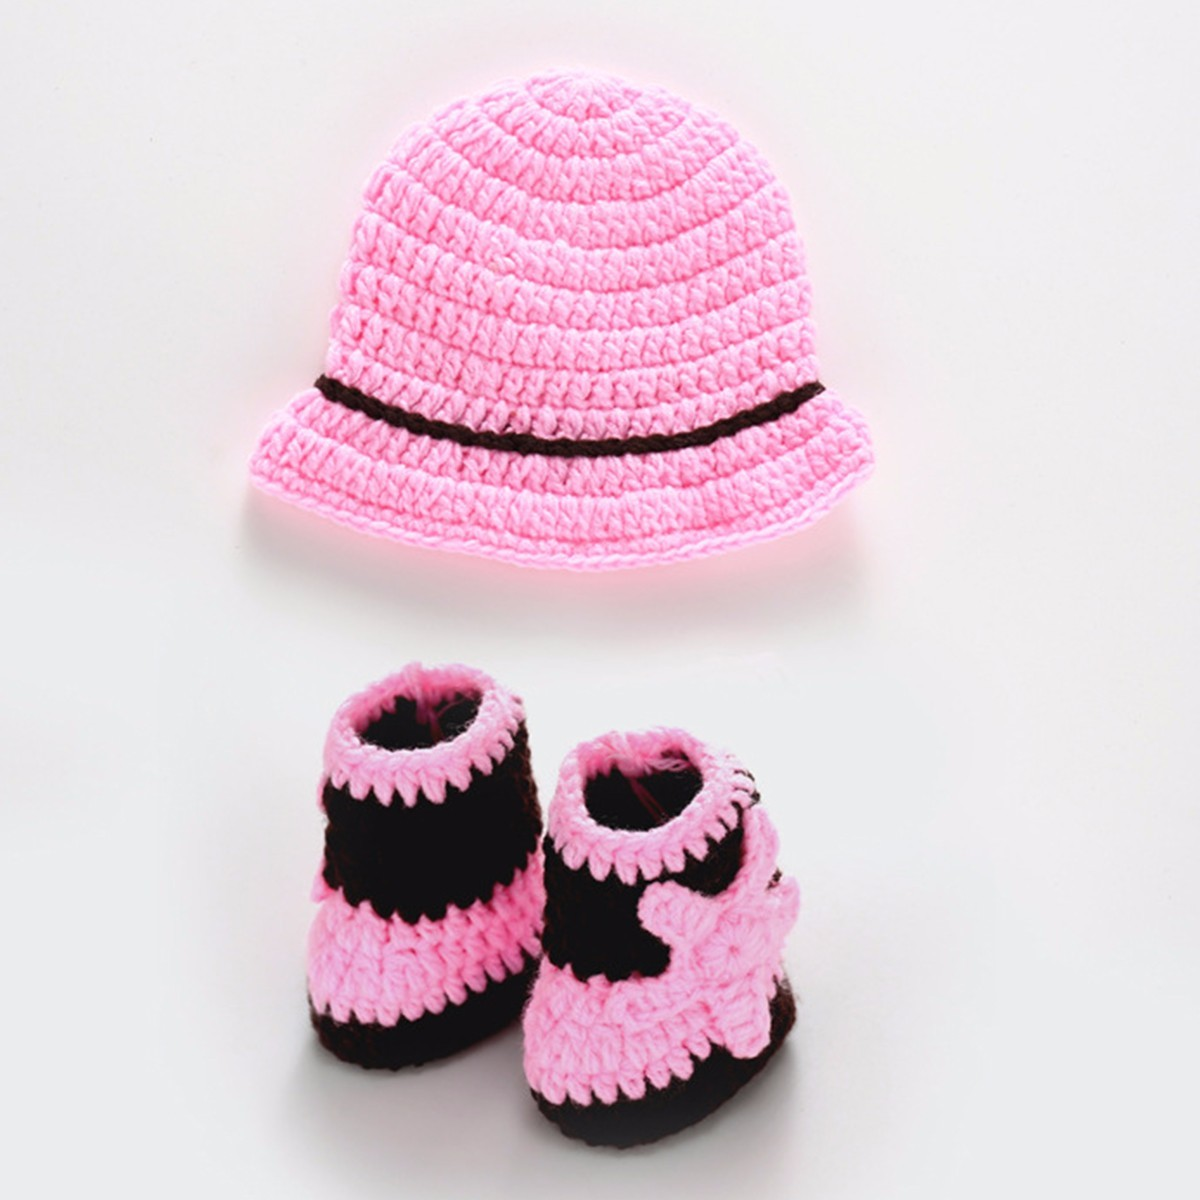 Outstanding Crochet Cowboy Hat And Boots Pattern Picture Collection ...